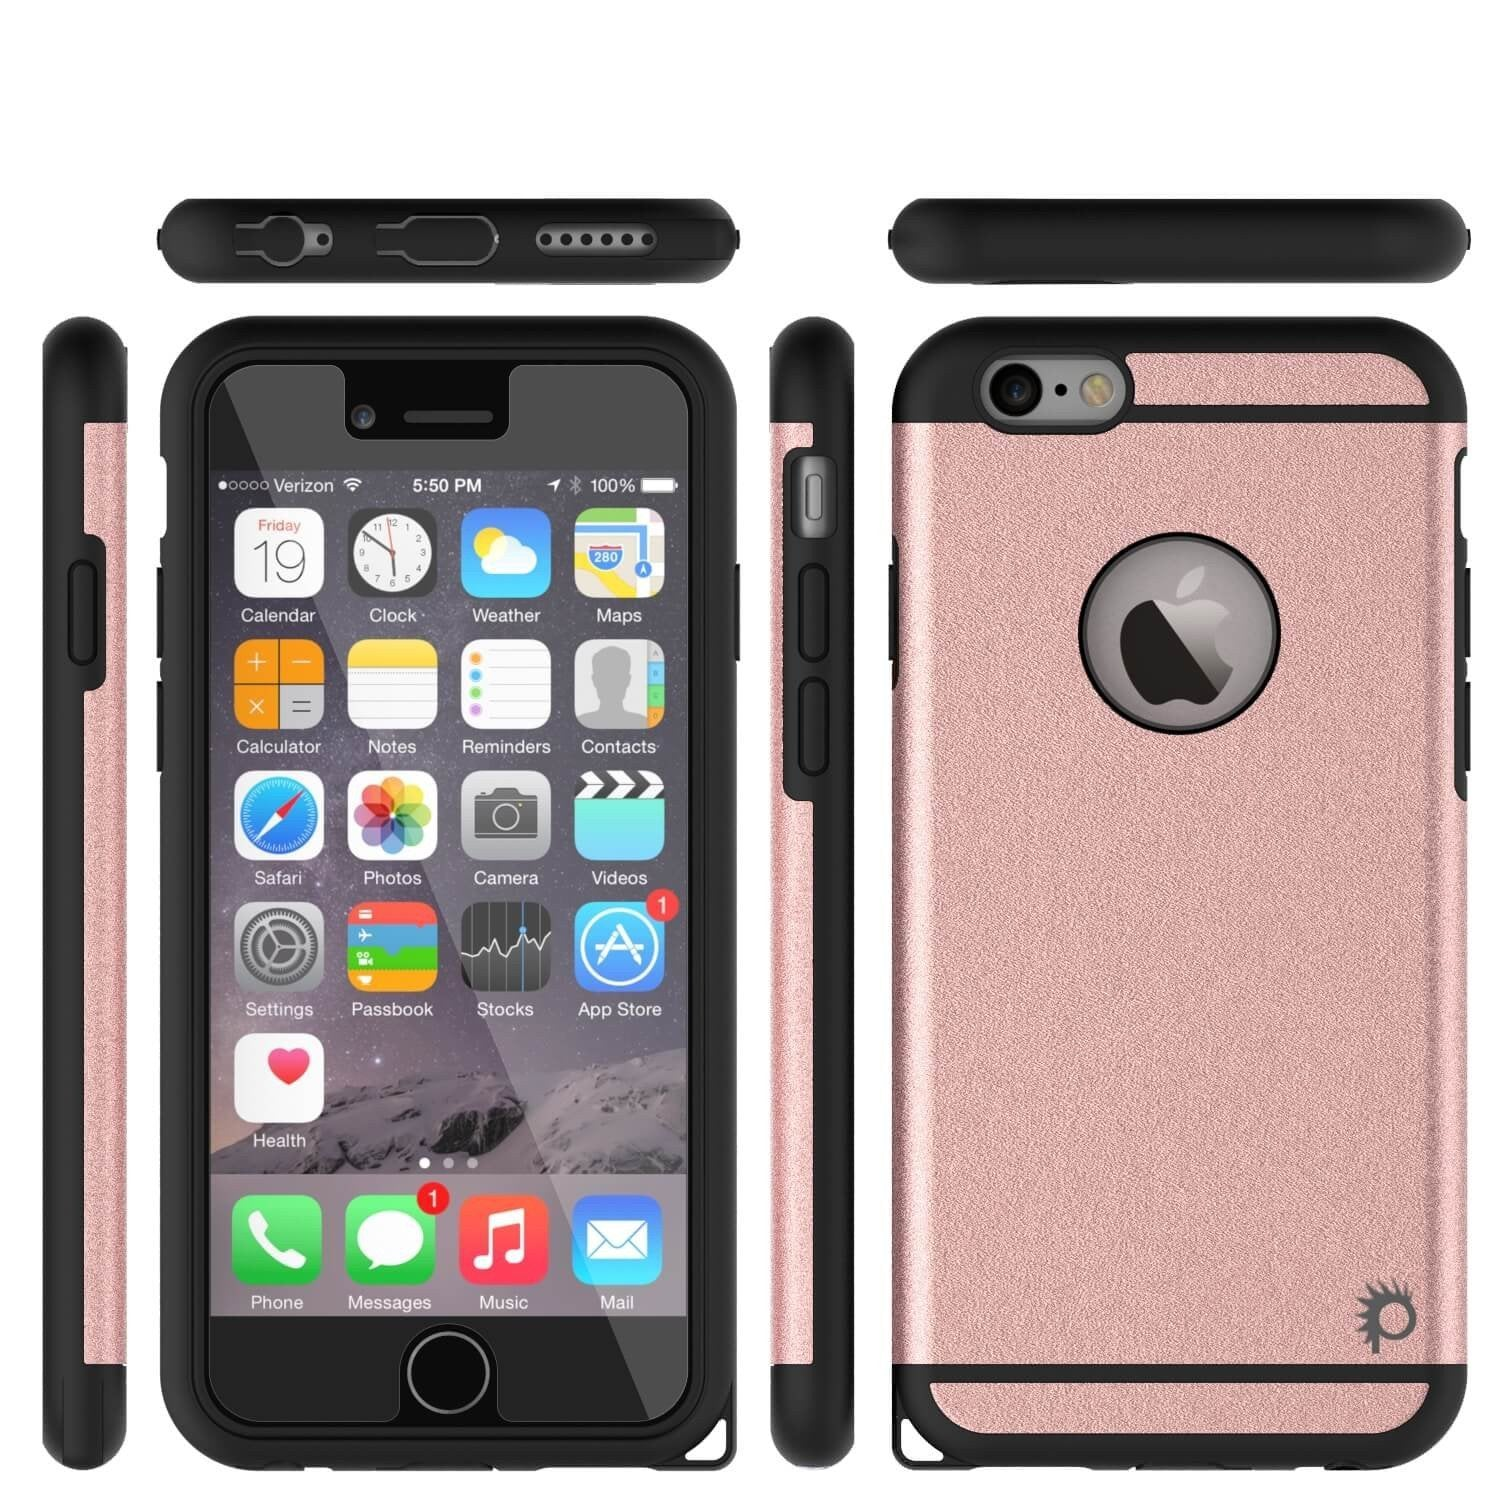 iPhone 5s/5 Case PunkCase Galactic pink Series Slim w/ Tempered Glass | Lifetime Warranty - PunkCase NZ